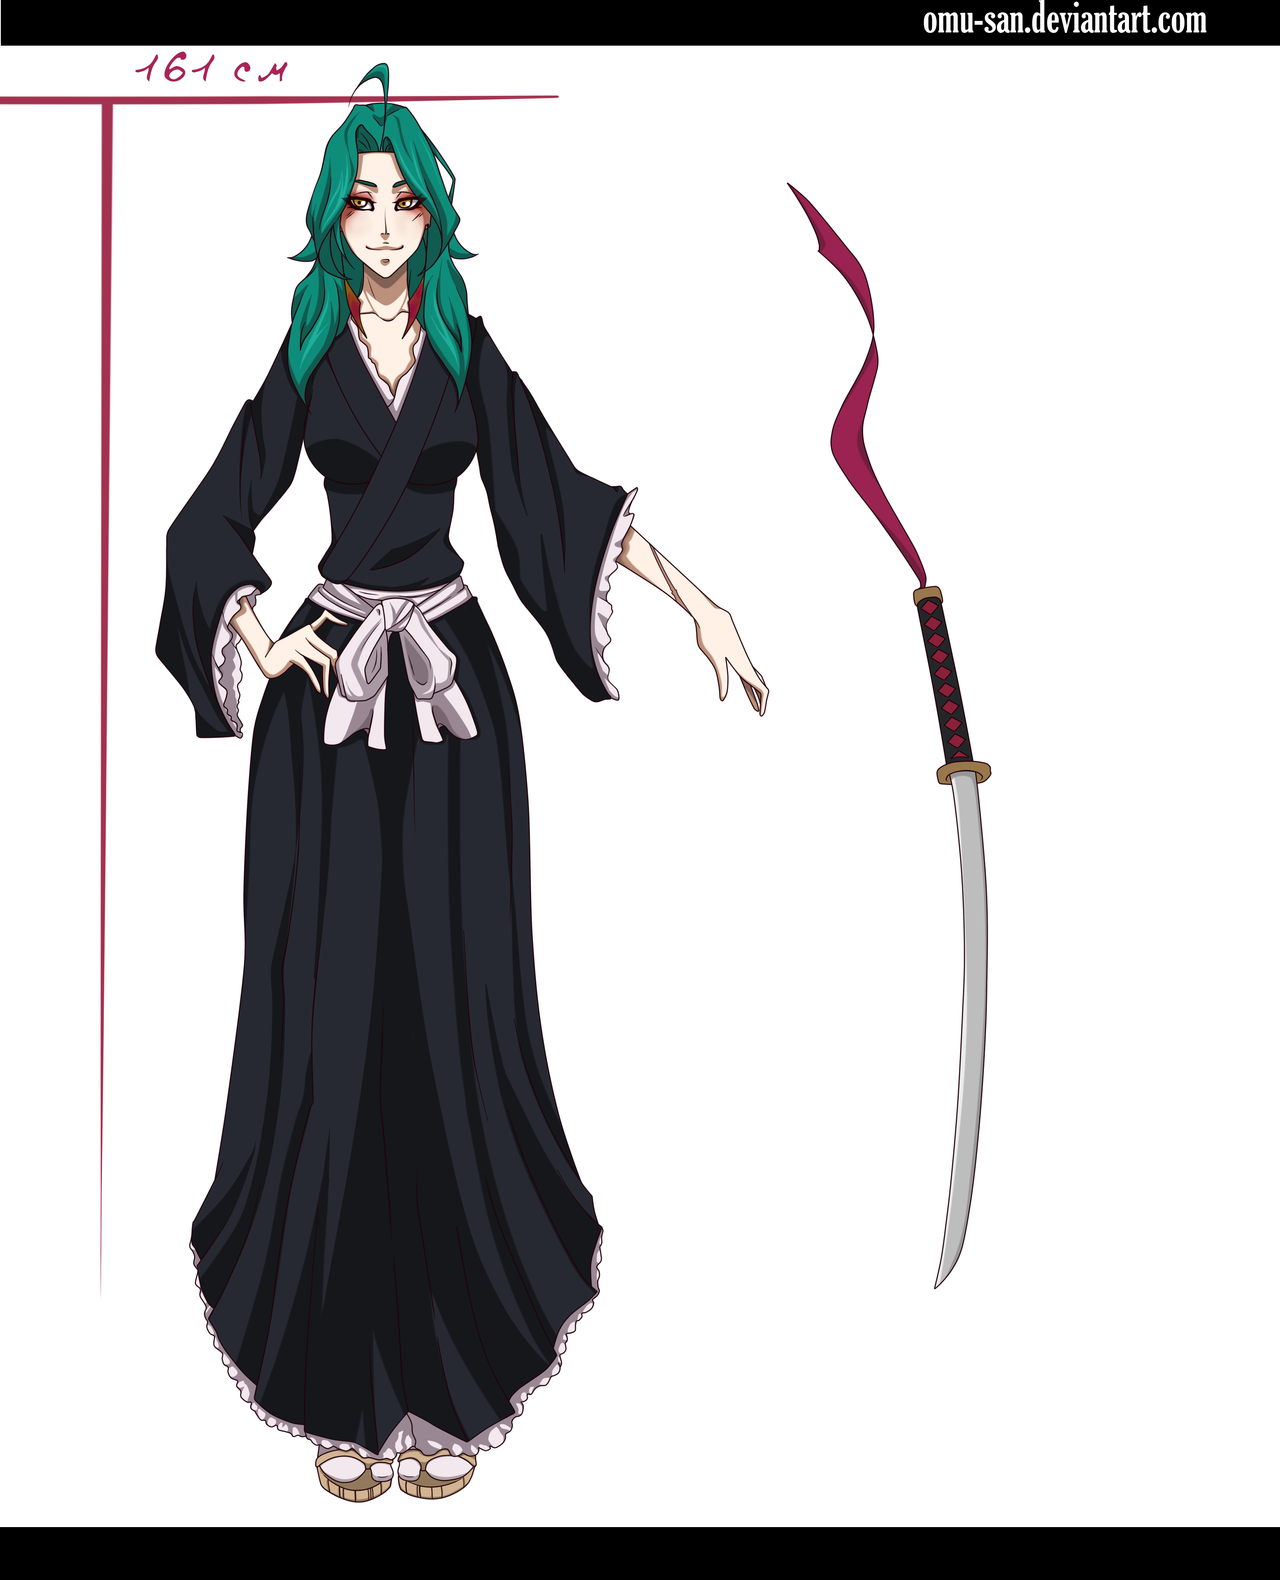 Bleach Oc Arashi By Sickeld160 On Deviantart: OC Bleach By Omu-san On DeviantArt